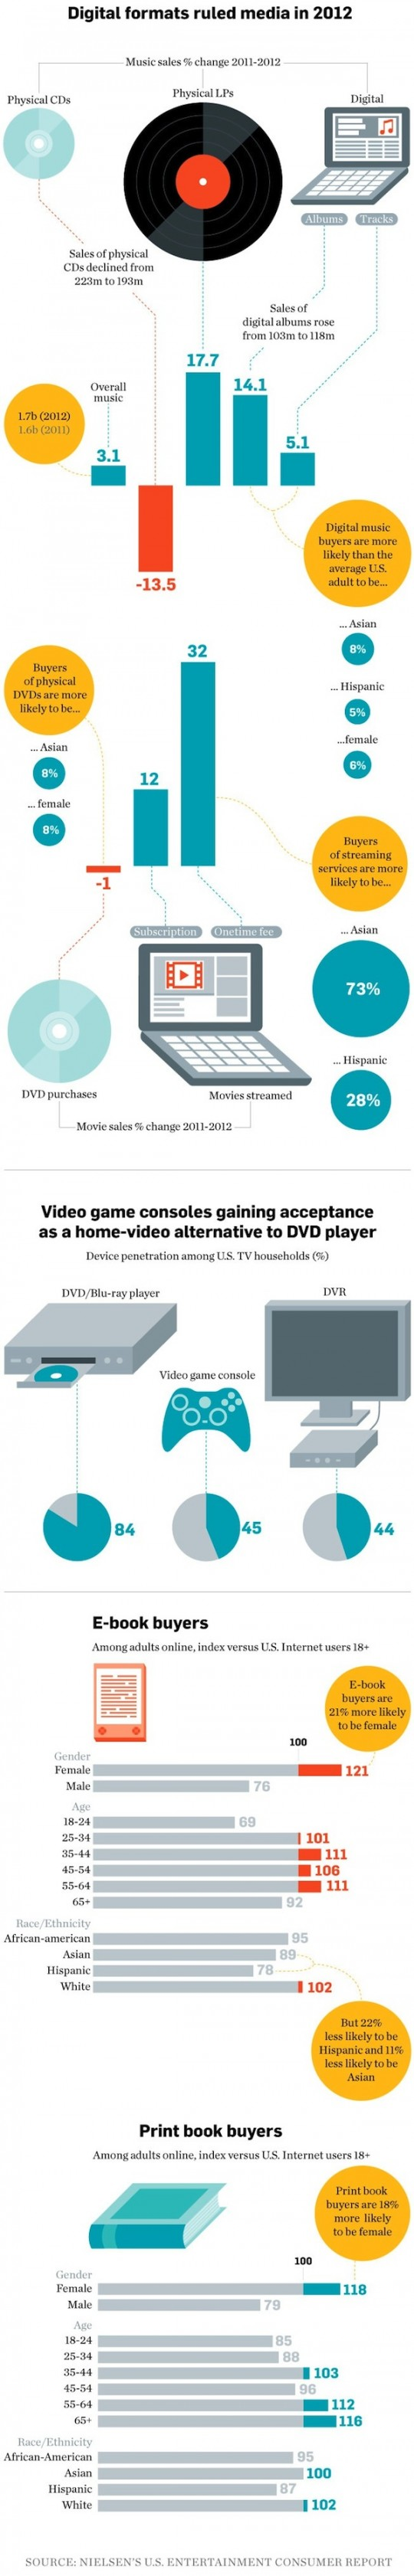 Consumers of digital content - infographic